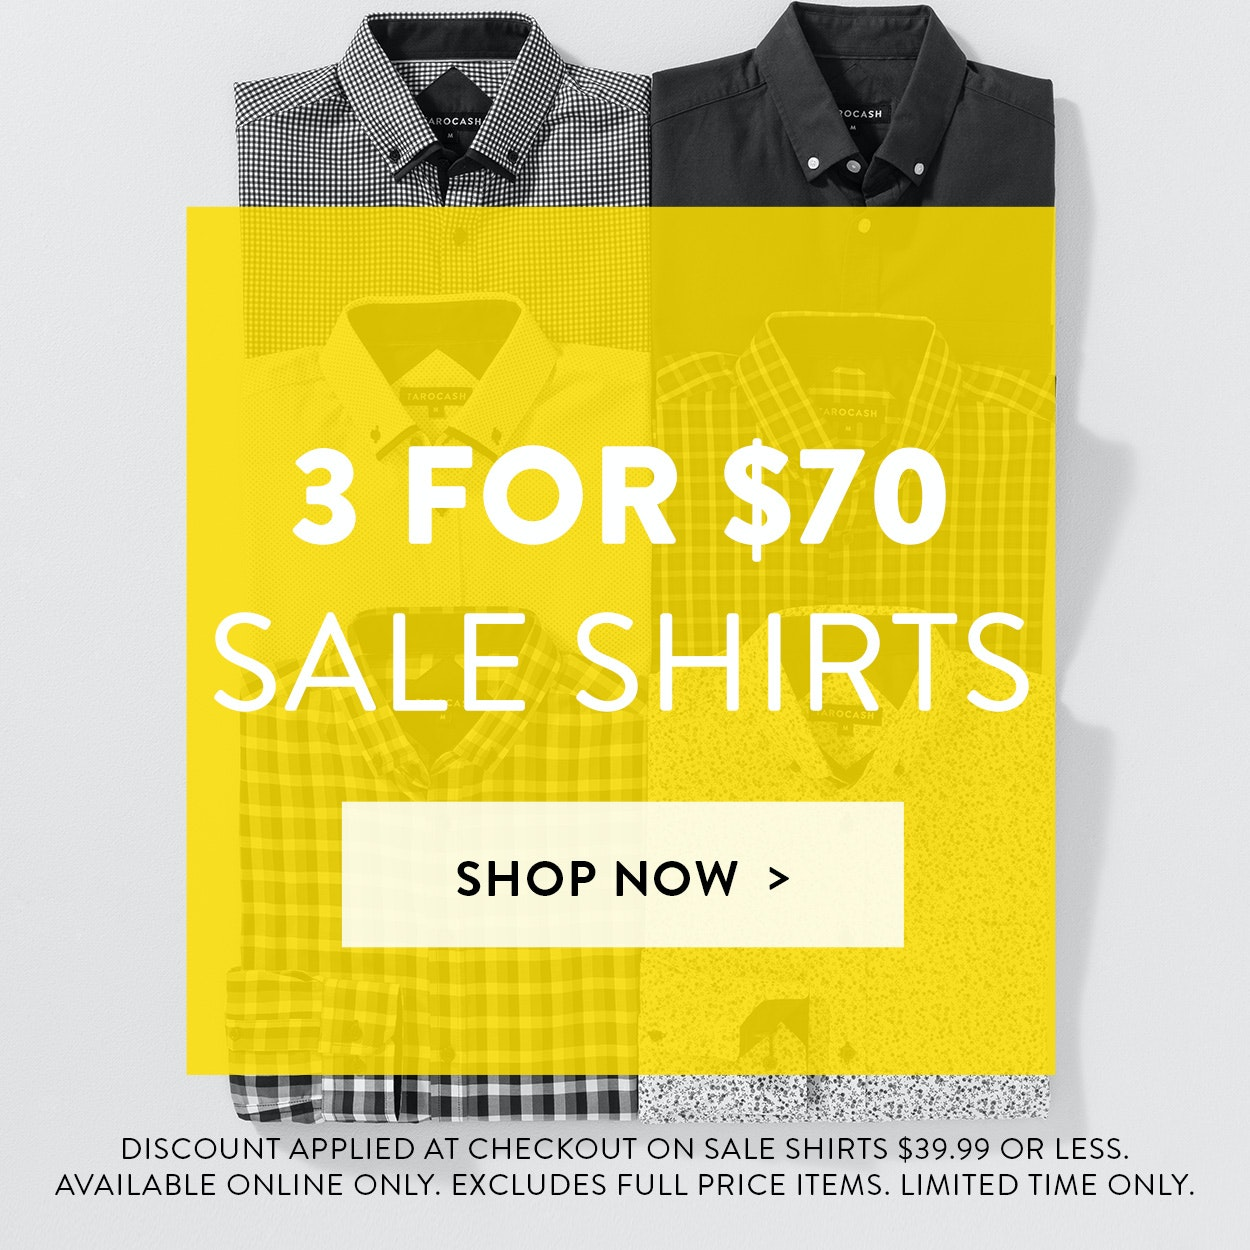 Sale Shirts: 3 for $70